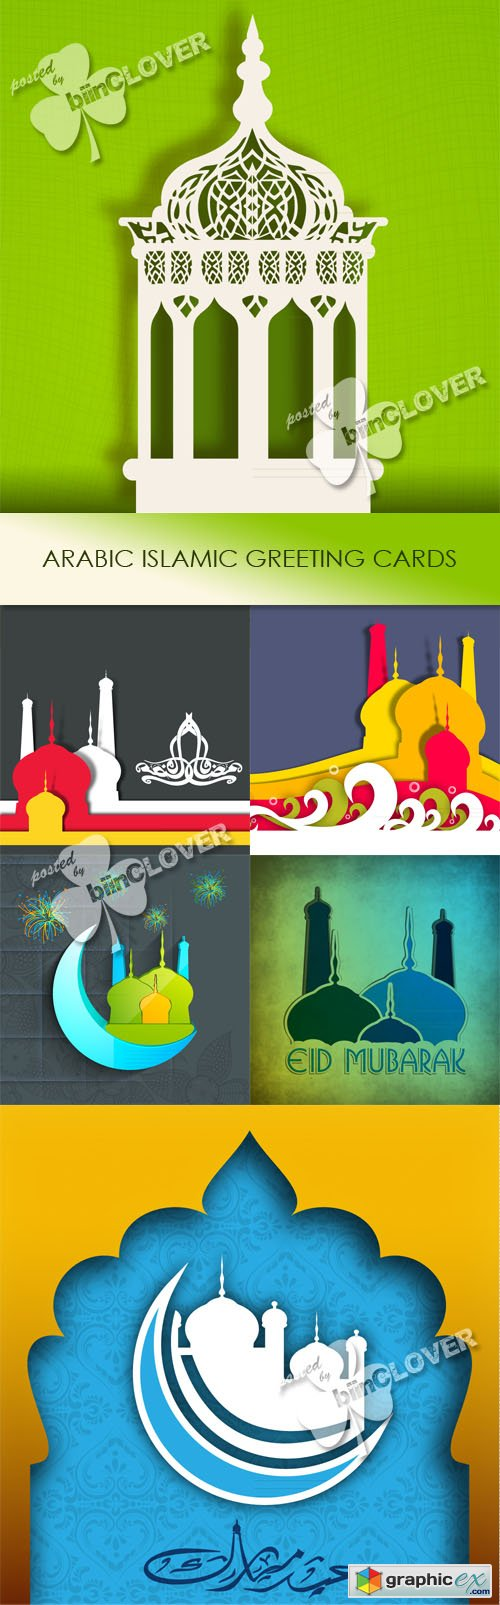 Vector Arabic Islamic greeting cards 0454